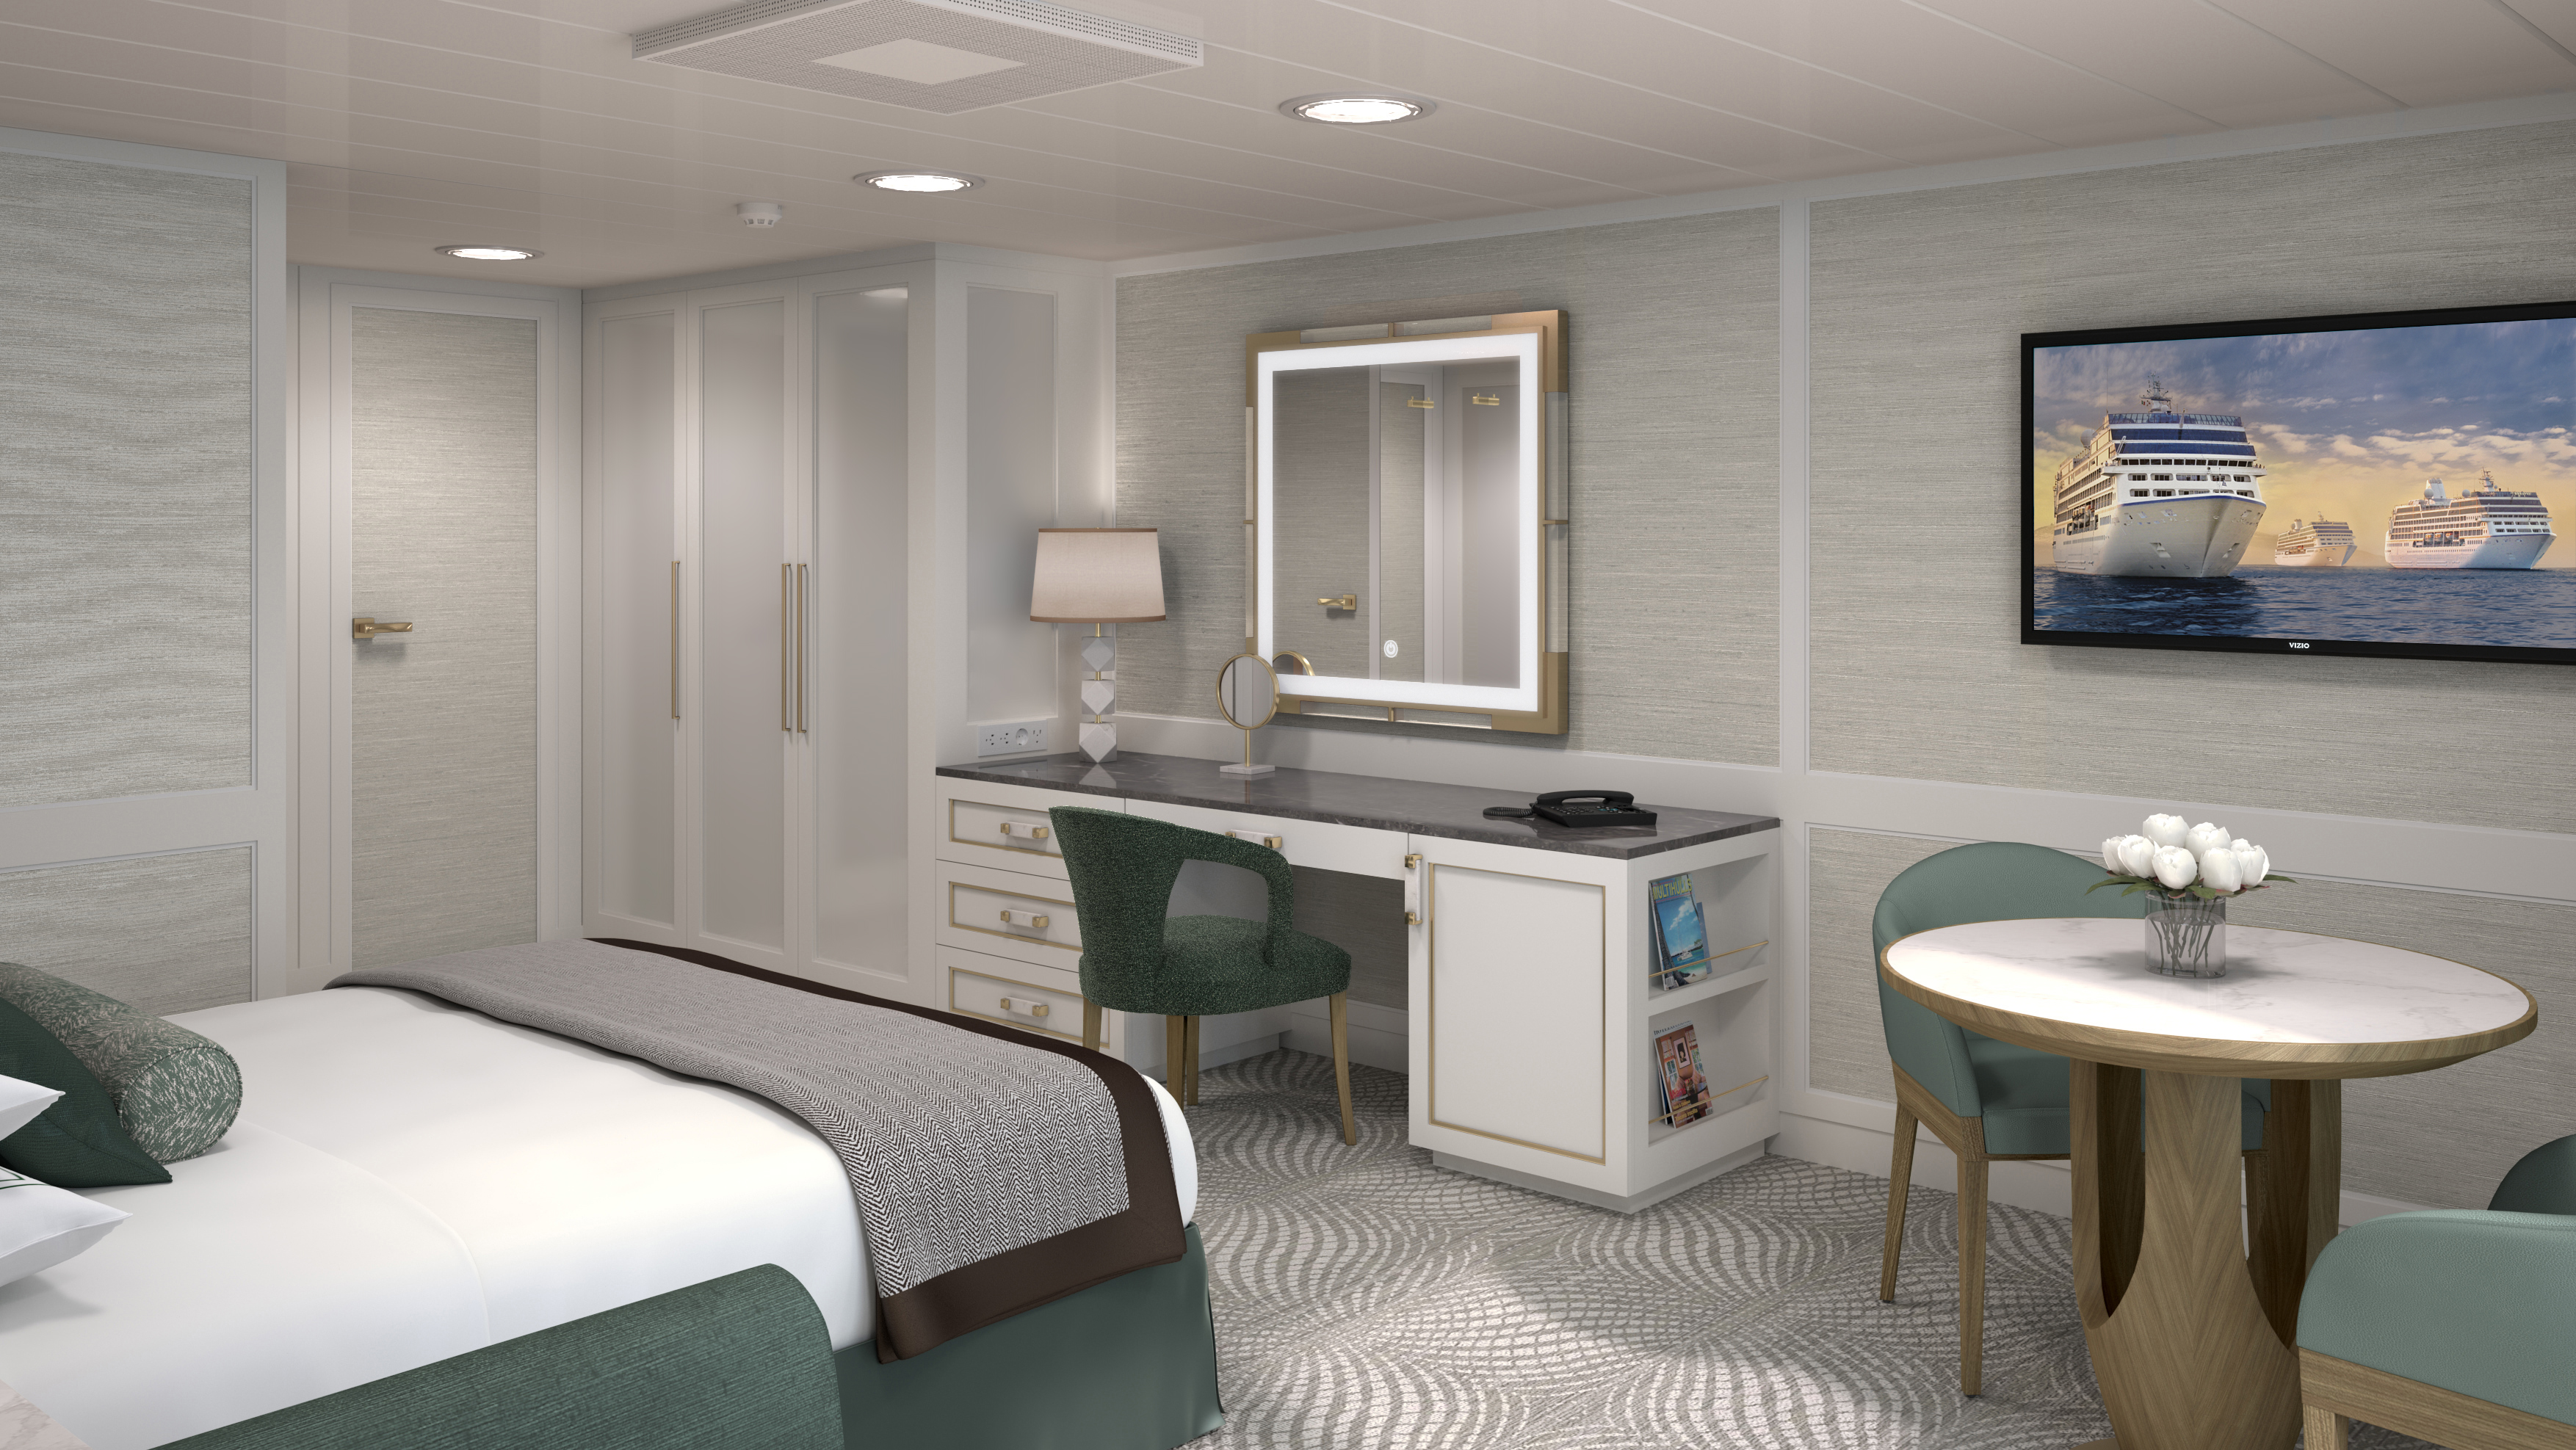 Oceania Cruises cruise reviews | Cruise line reviews for